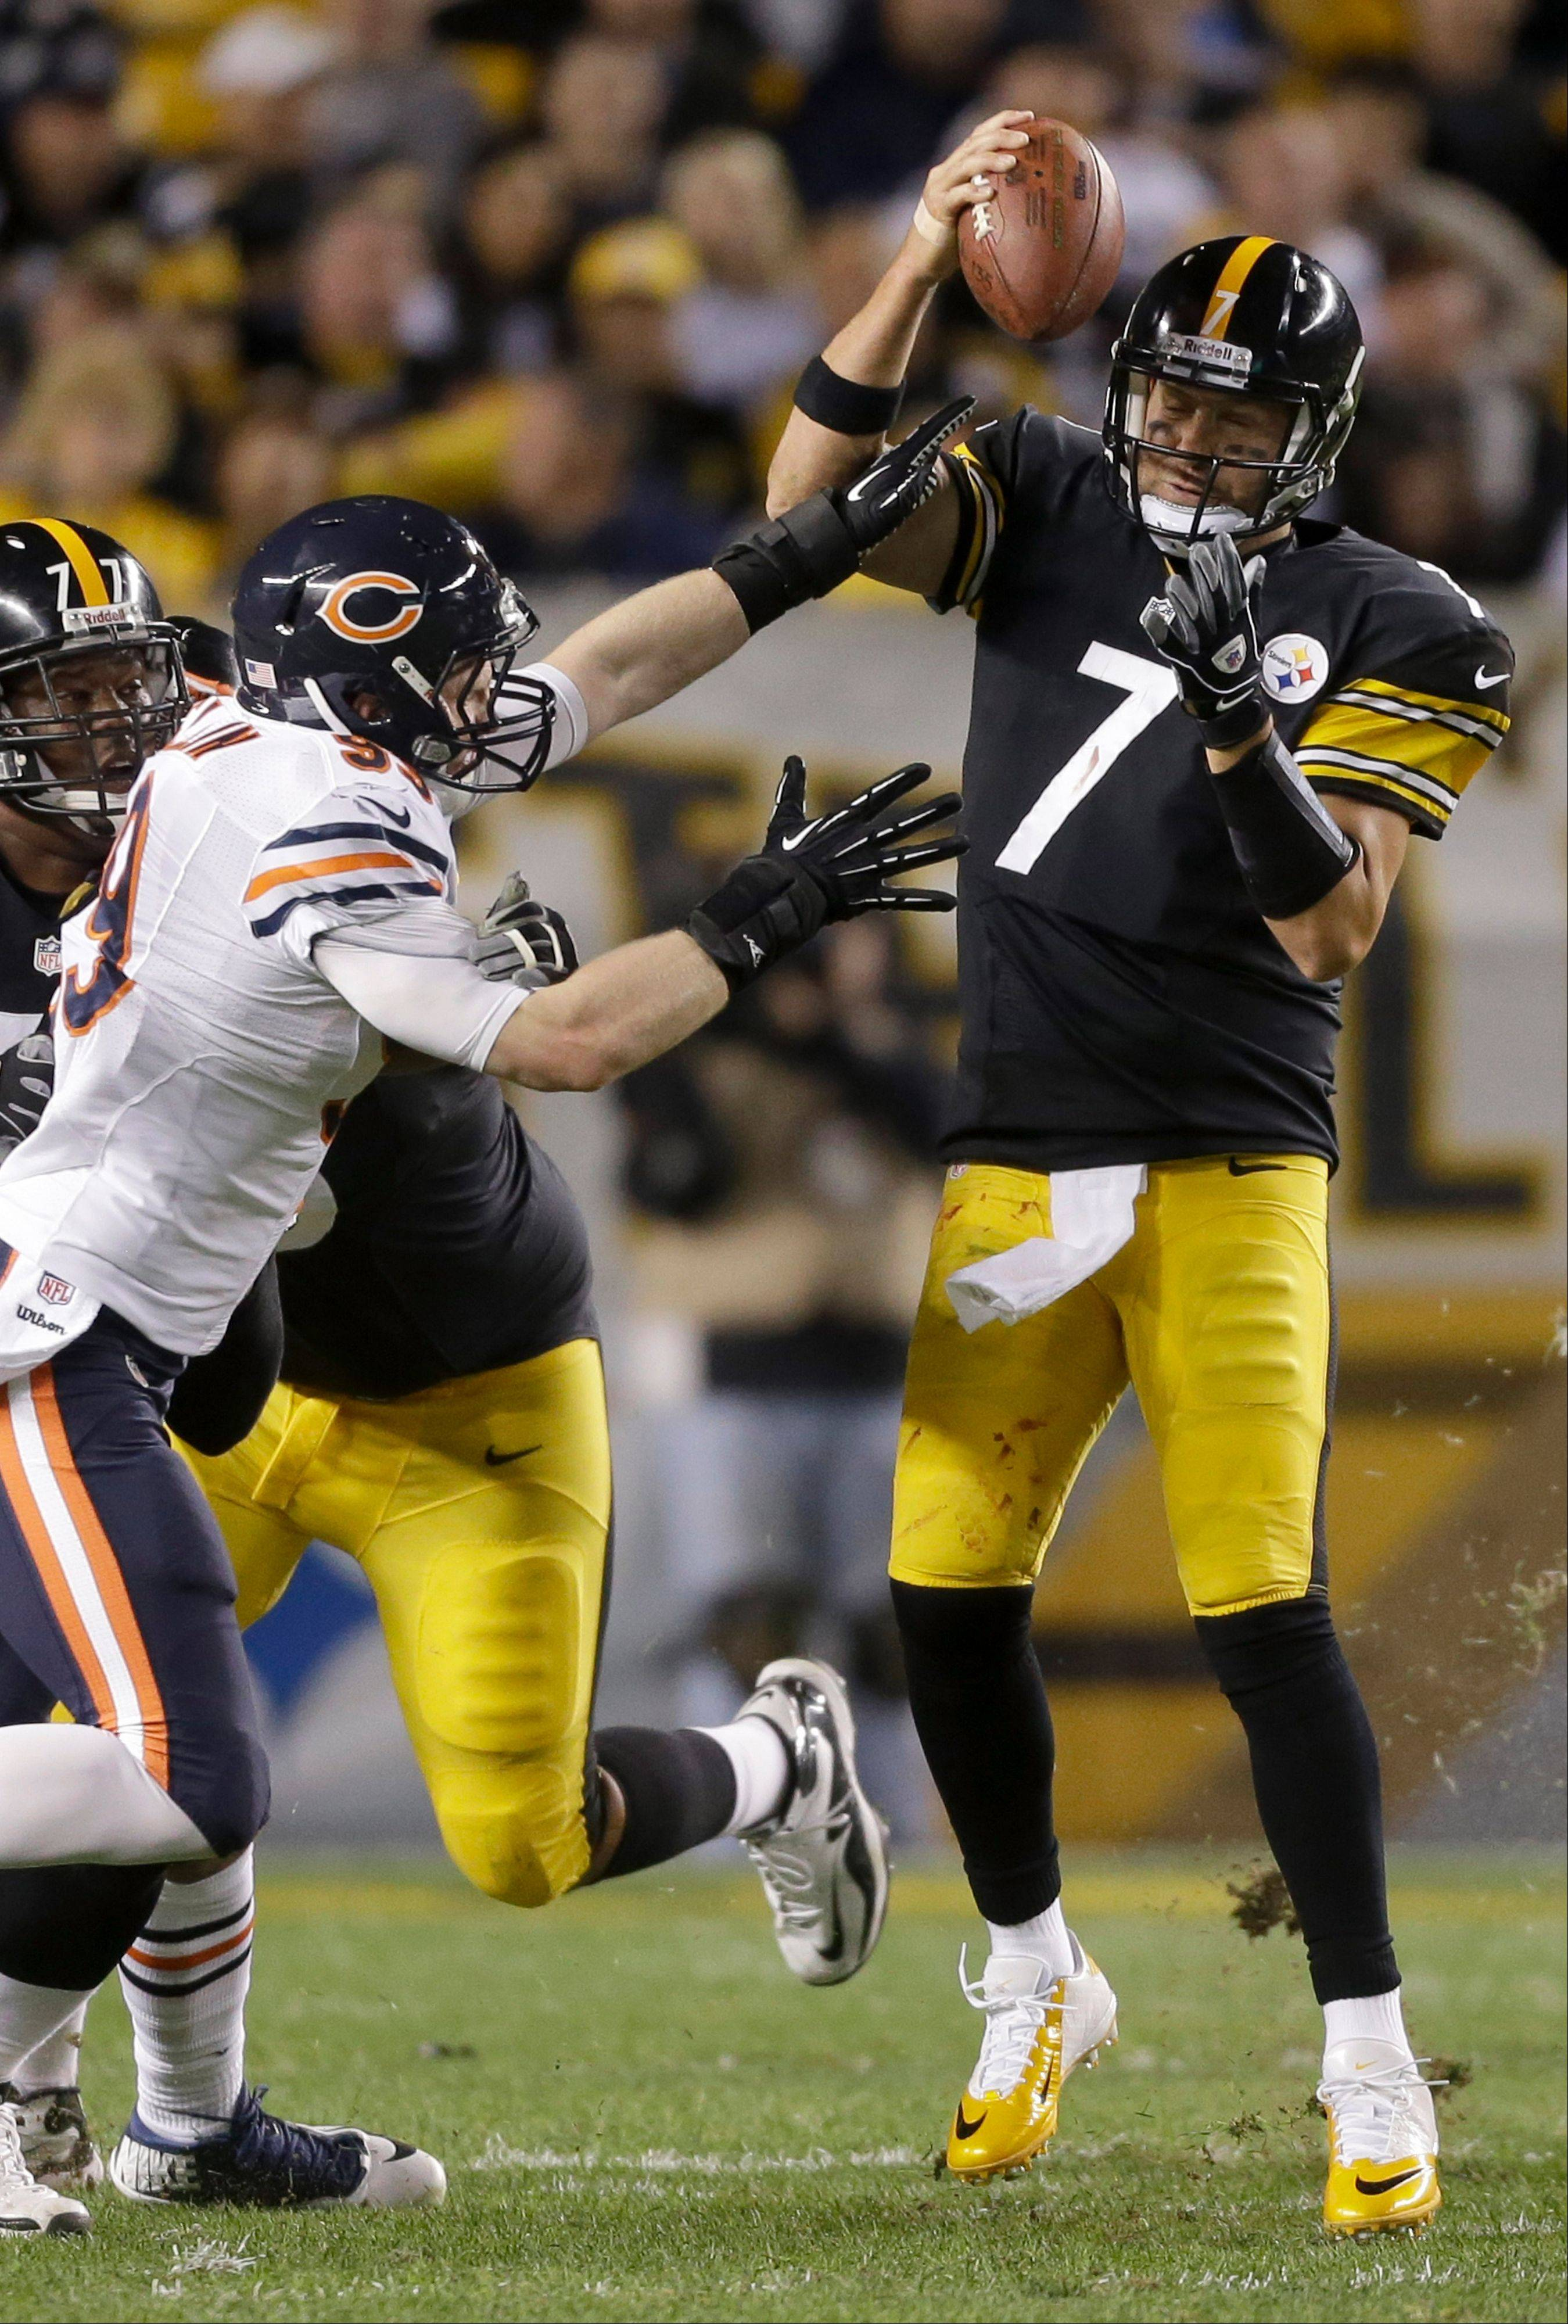 Bears defensive end Shea McClellin puts the pressure on Steelers quarterback Ben Roethlisberger.